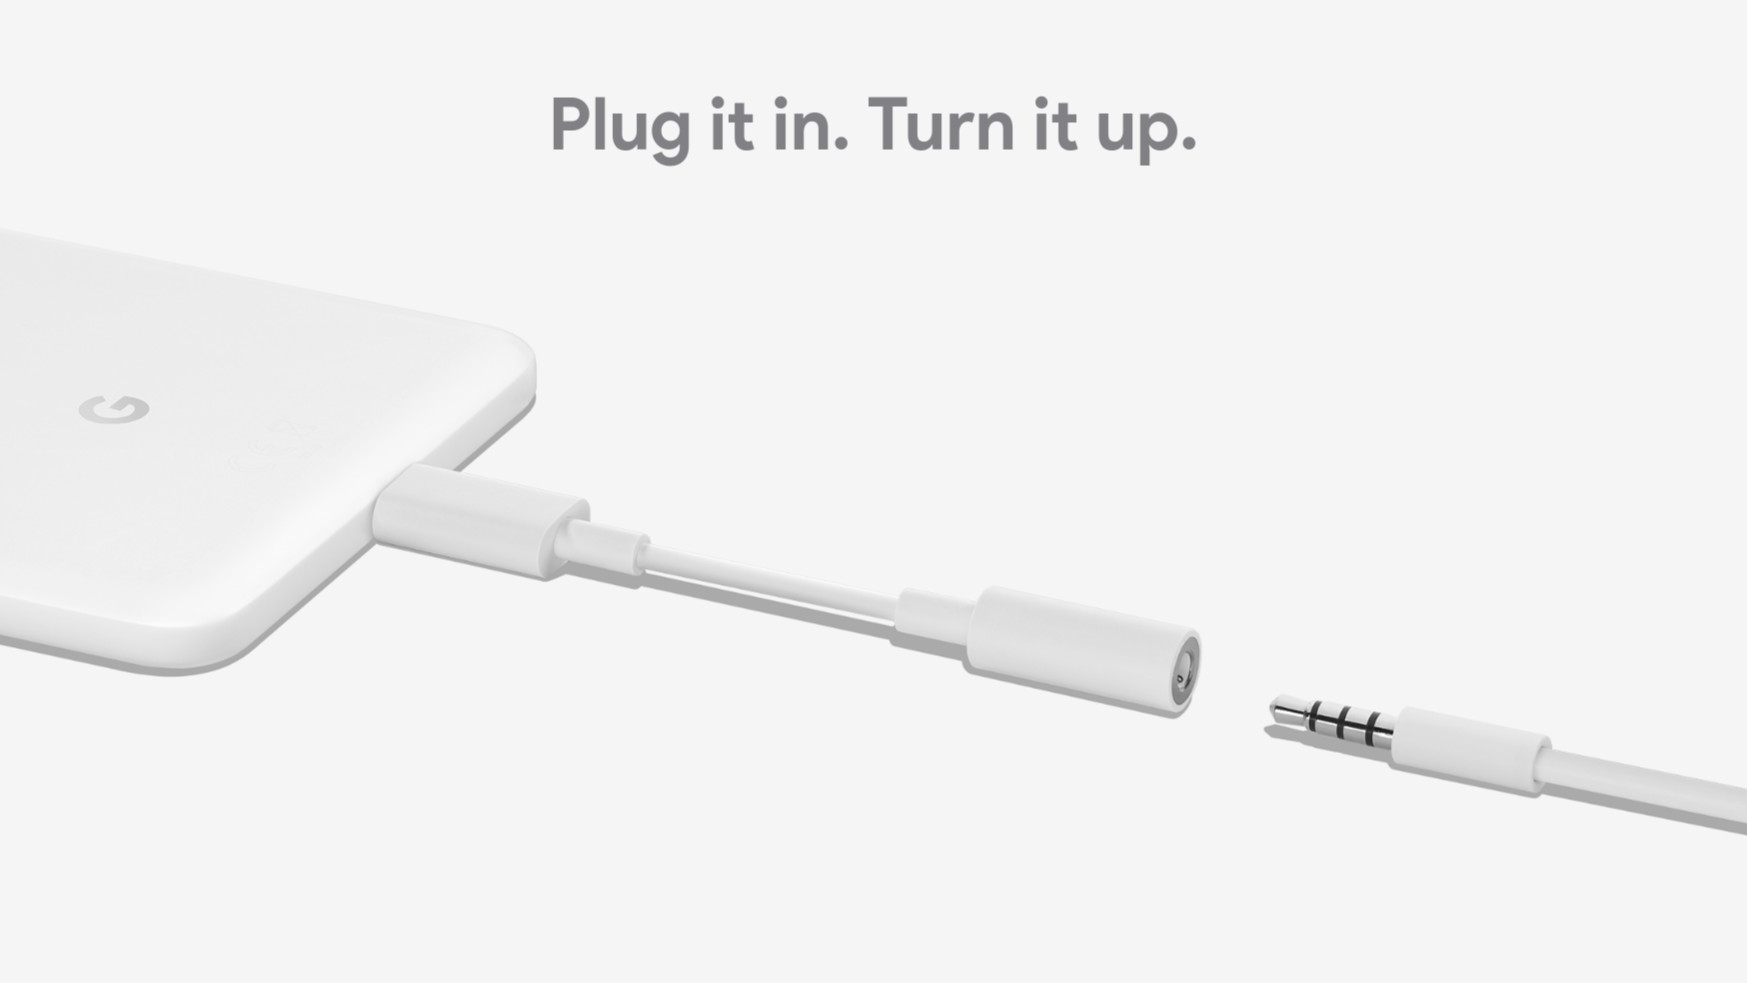 Google Made Another Headphone Dongle for the Pixel 2 for $12